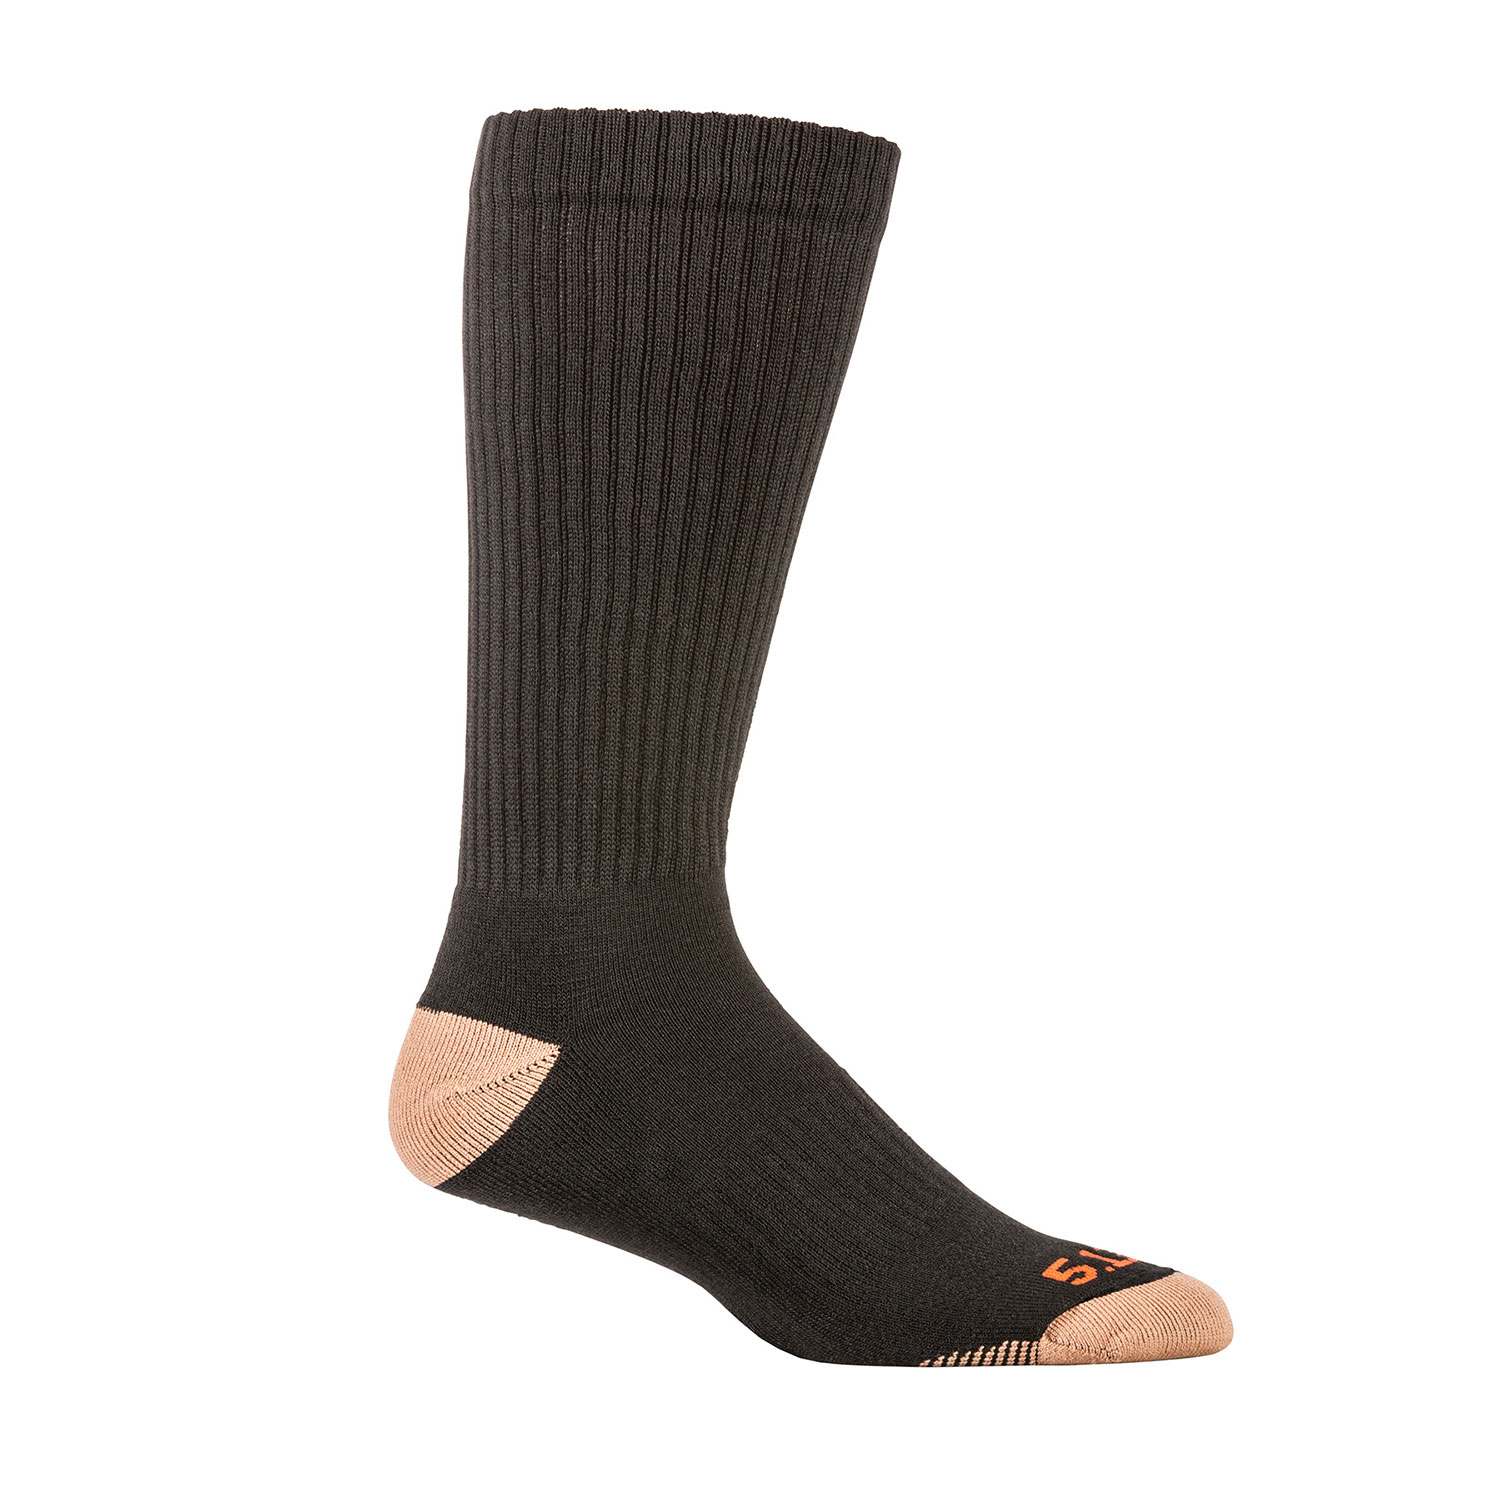 5.11 Tactical Cupron Crew Socks 3 Pack